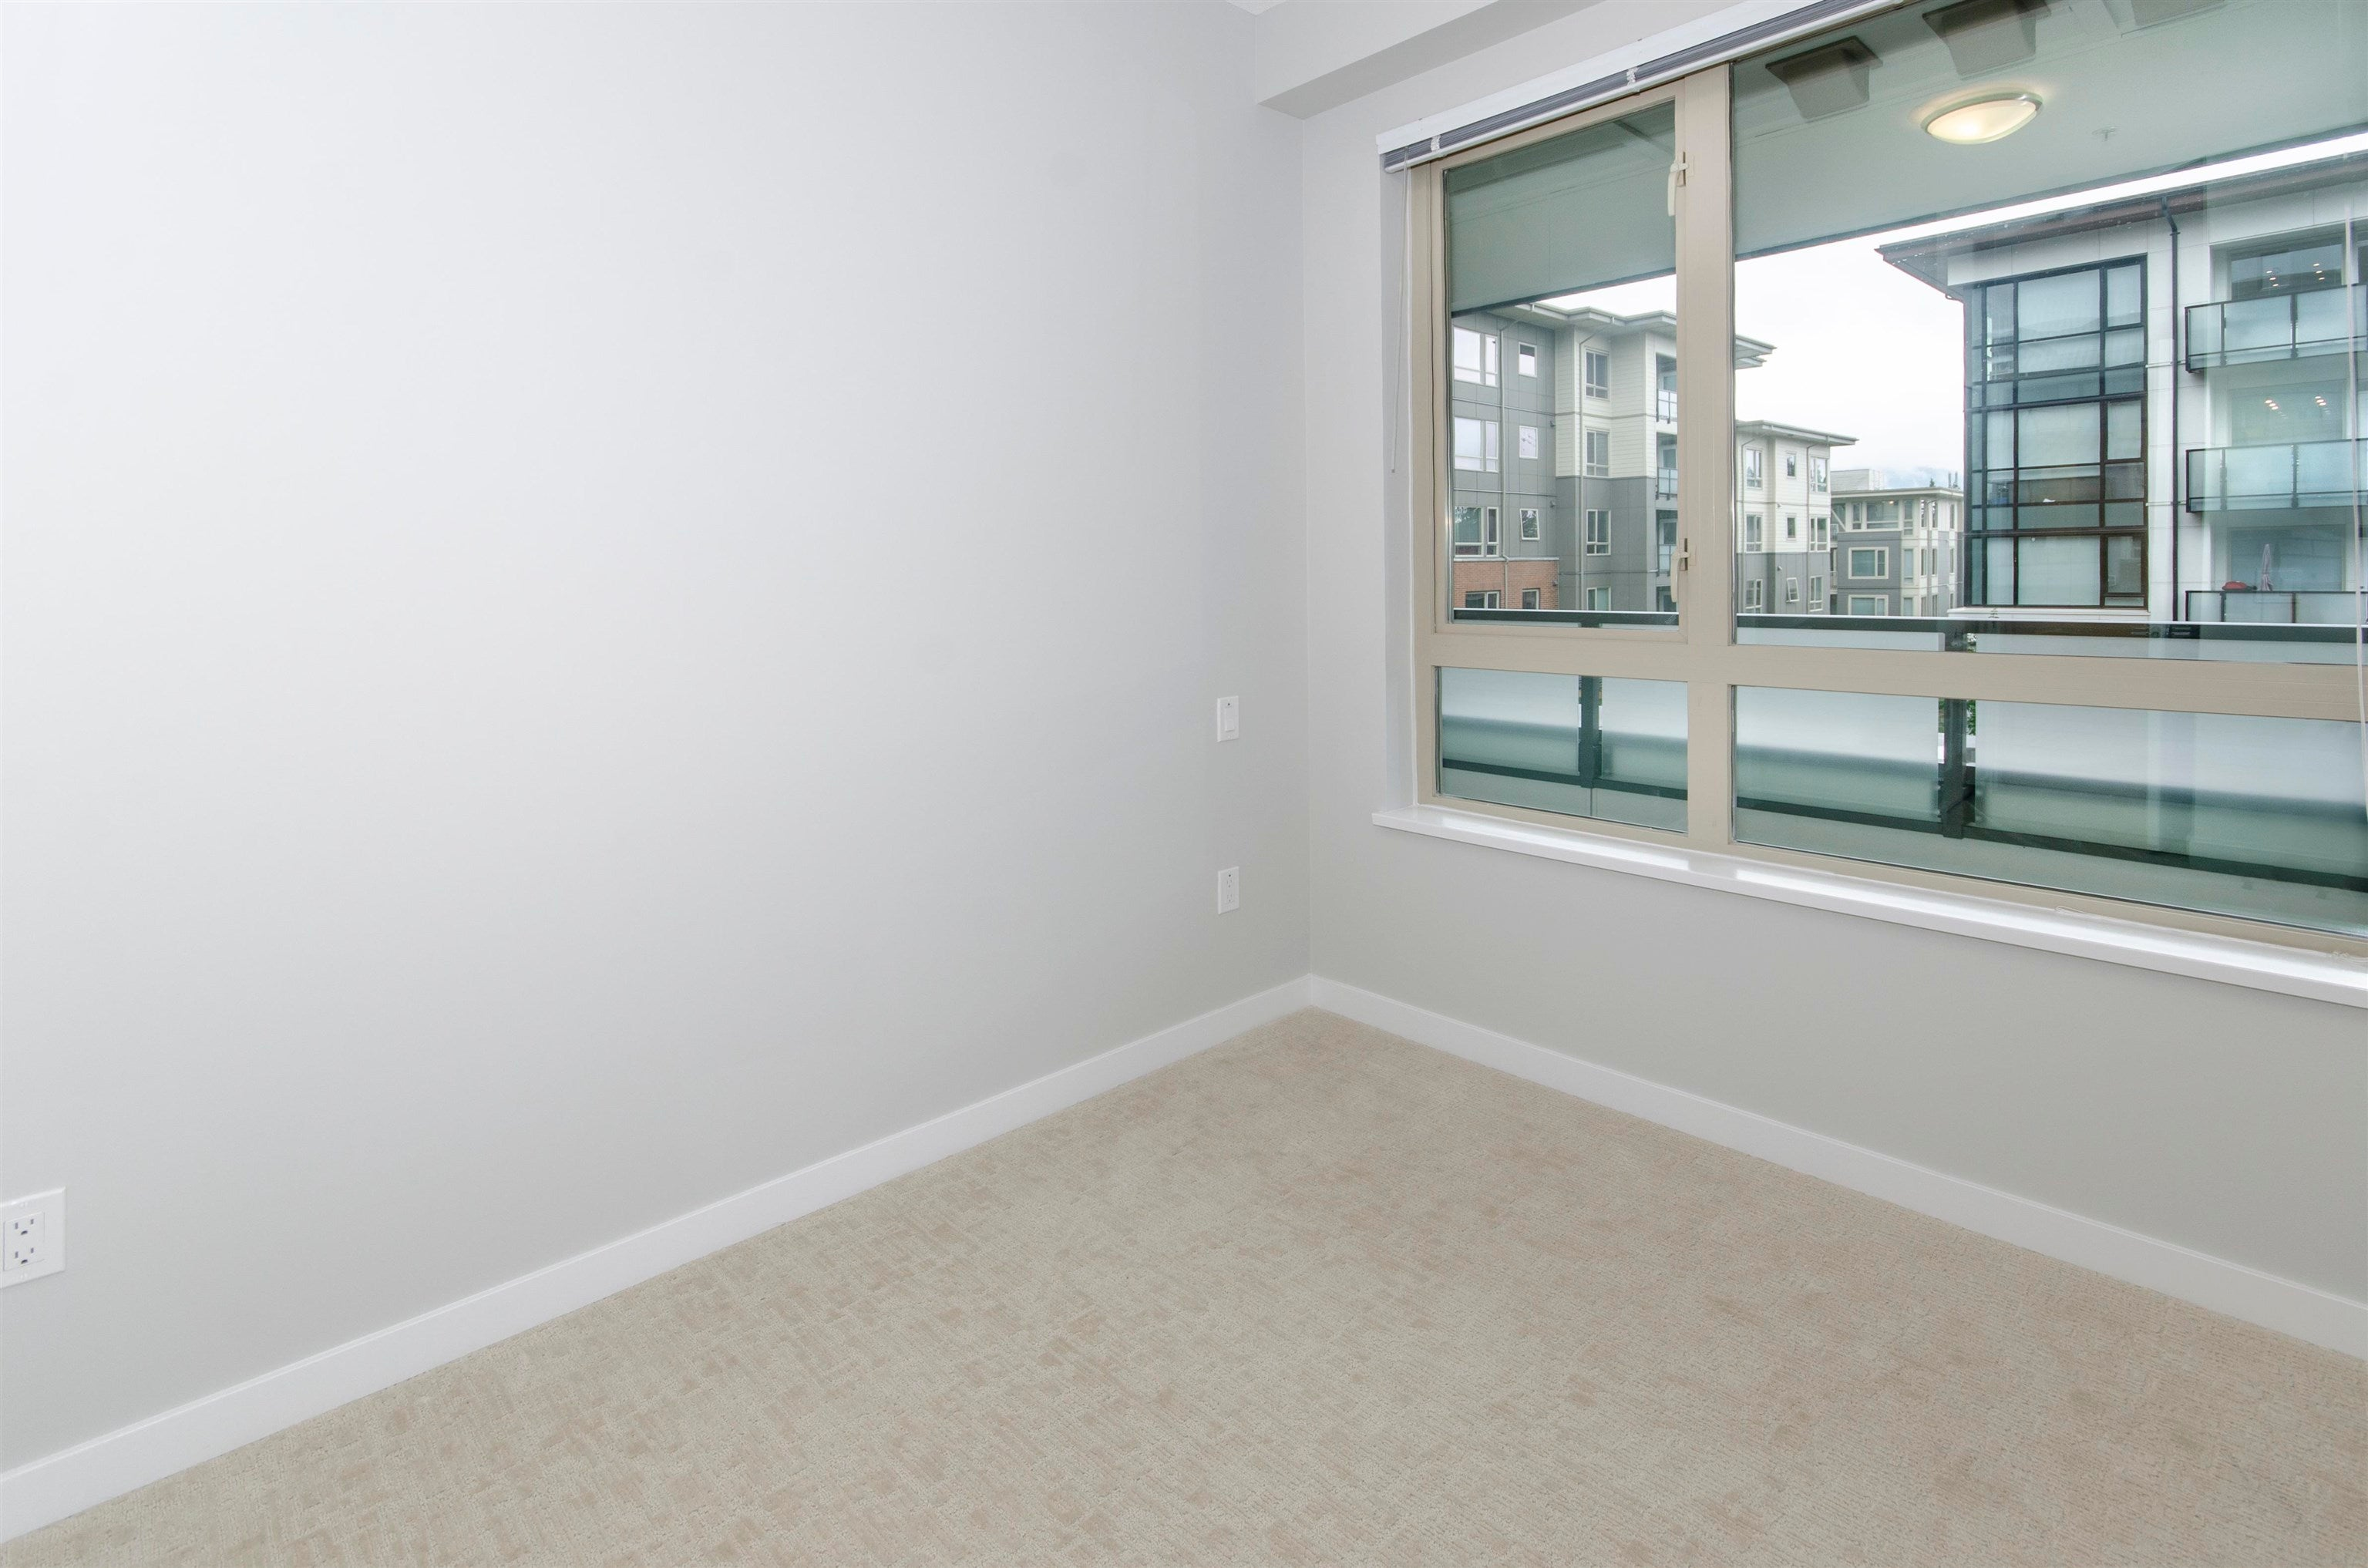 205 2651 LIBRARY LANE - Lynn Valley Apartment/Condo for sale, 2 Bedrooms (R2620222) - #11